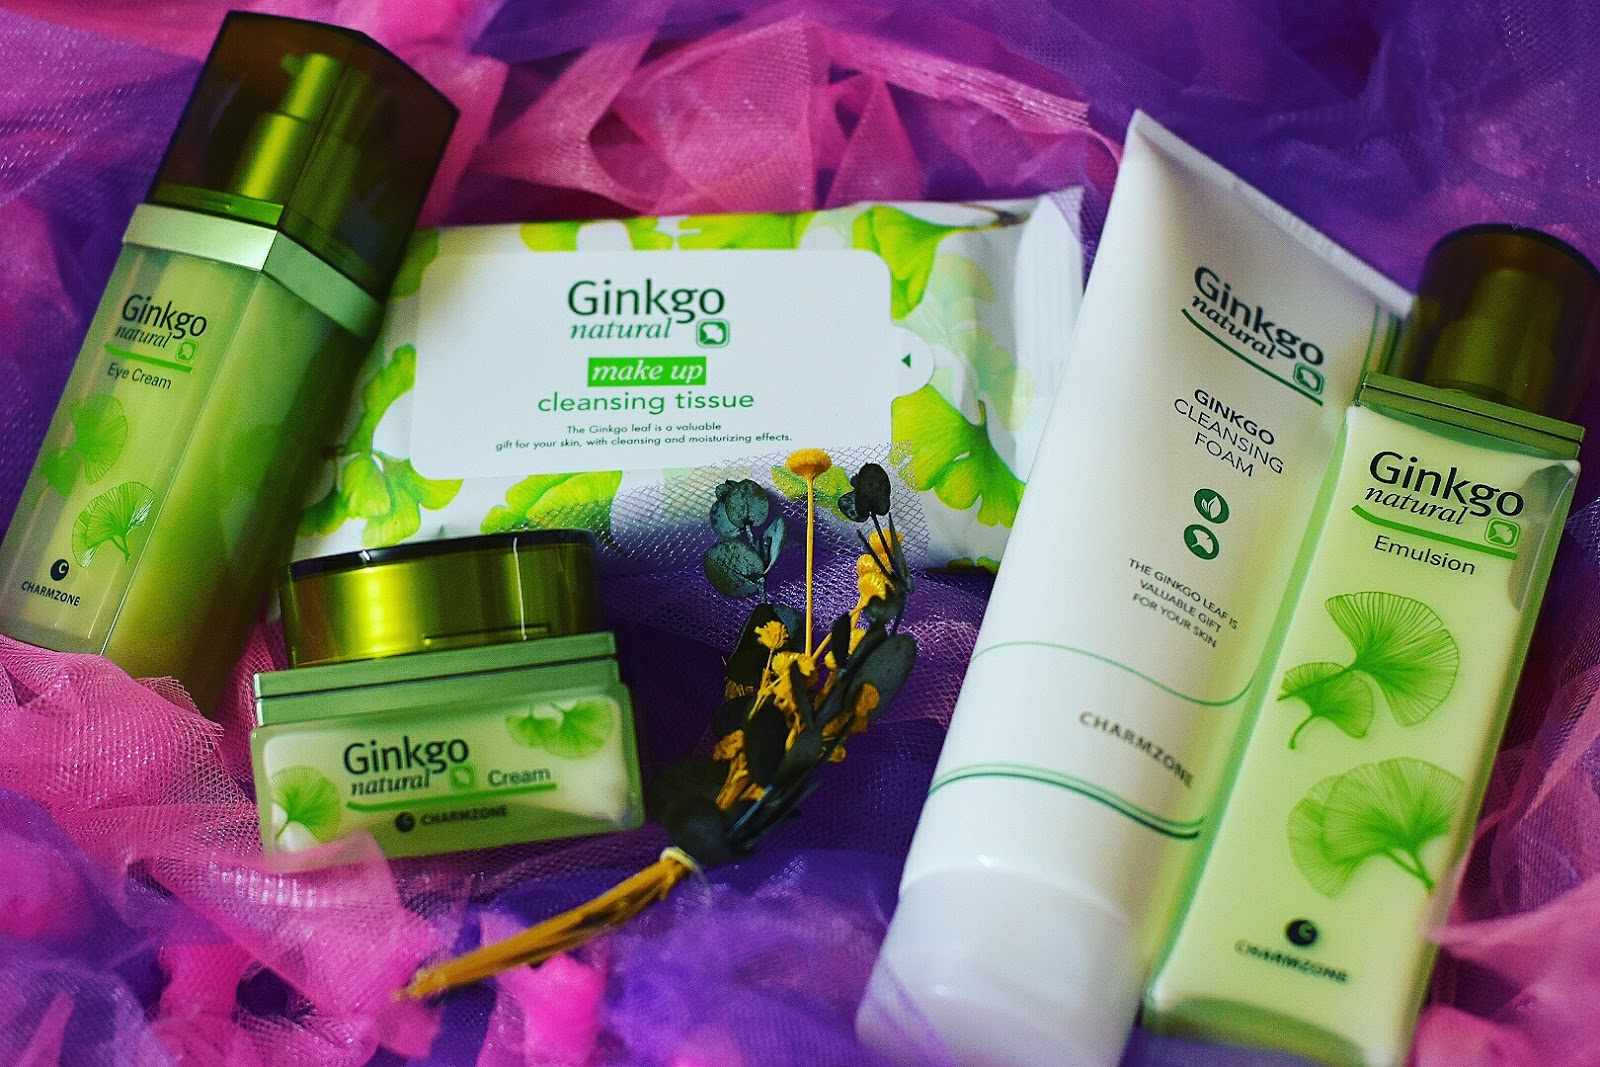 The Most Powerful Skincare From Korea - Ginkgo Natural